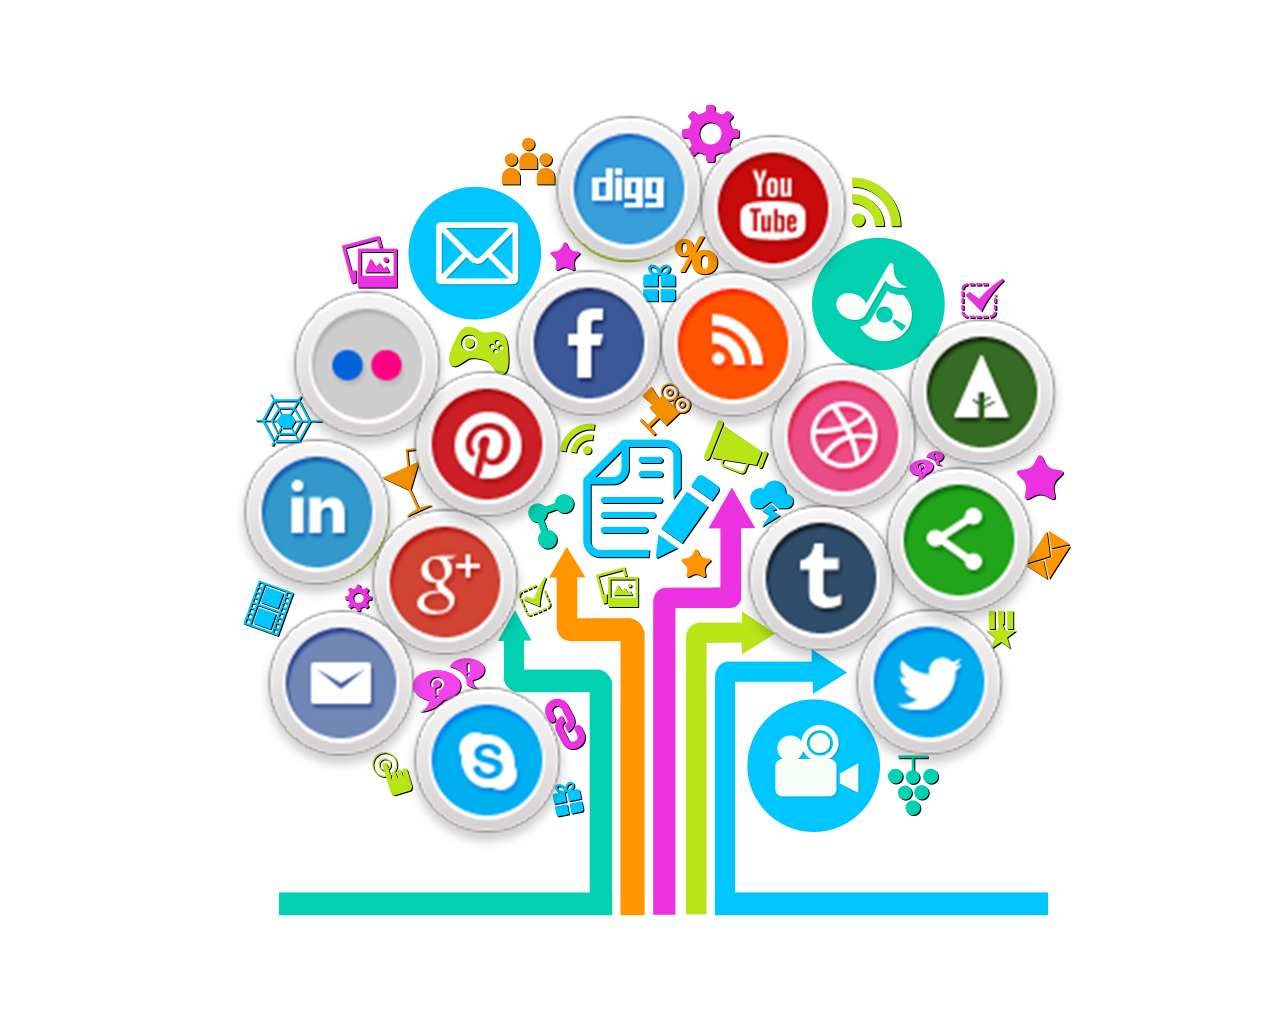 Social Media Marketing Archivos  Creatia Business. Surface Mount Technology Best Hybrid Suv 2014. Estate Planning Questionnaire. What Do You Need To Become A Psychiatrist. Online Linguistics Classes Fire Safety First. Psychology Class Online Large Brokerage Firms. Best Camera Surveillance System. Lincoln Financial Advisors Reviews. How To Record A Meeting Photo Hosting Services